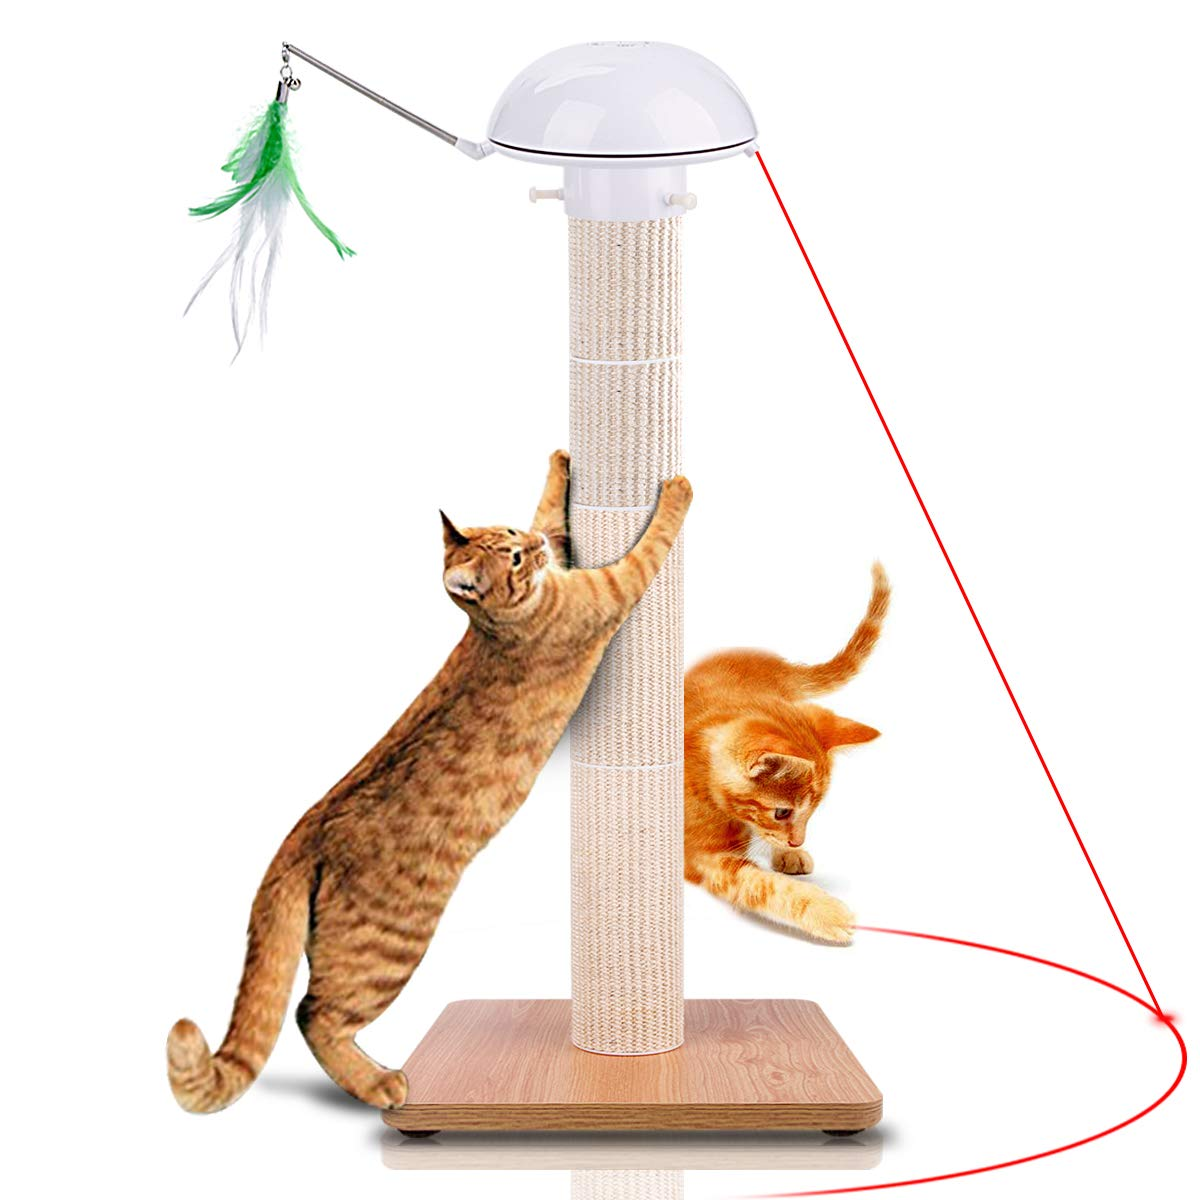 Huicocy Cat Scratching Post,35 inches Tall Cat Tree Detachable Cat Scratcher Post Covered by Allergen-Free Durable Sisal with Interactive Auto Rotating Light Feather Cat Chaser Toy by Huicocy